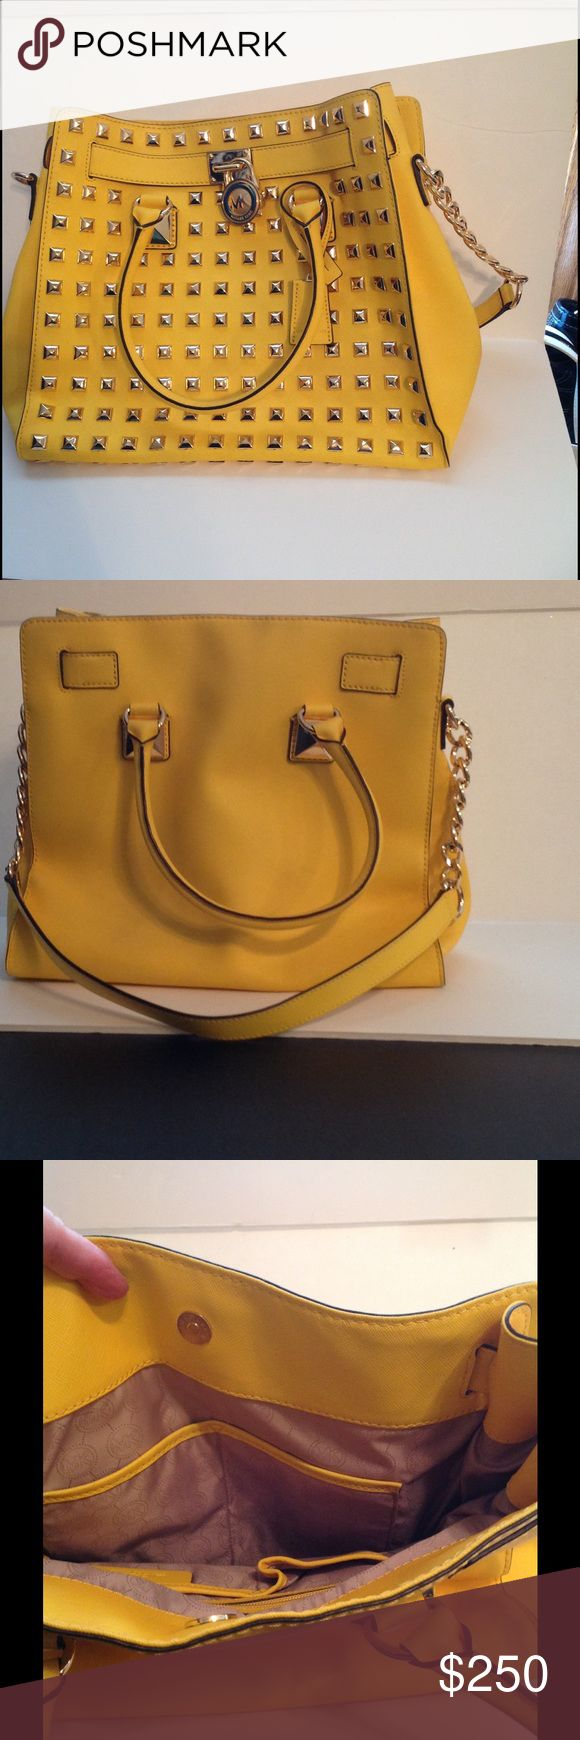 Michael Kors large Hamilton Bright yellow, Michael Kors large studded hand bag. In excellent condition. It's been sitting in my closet for so long. I can't remember if I even use it! If I did, it was only a few times. I initially bought it to wear with an all black outfit. Michael Kors Bags